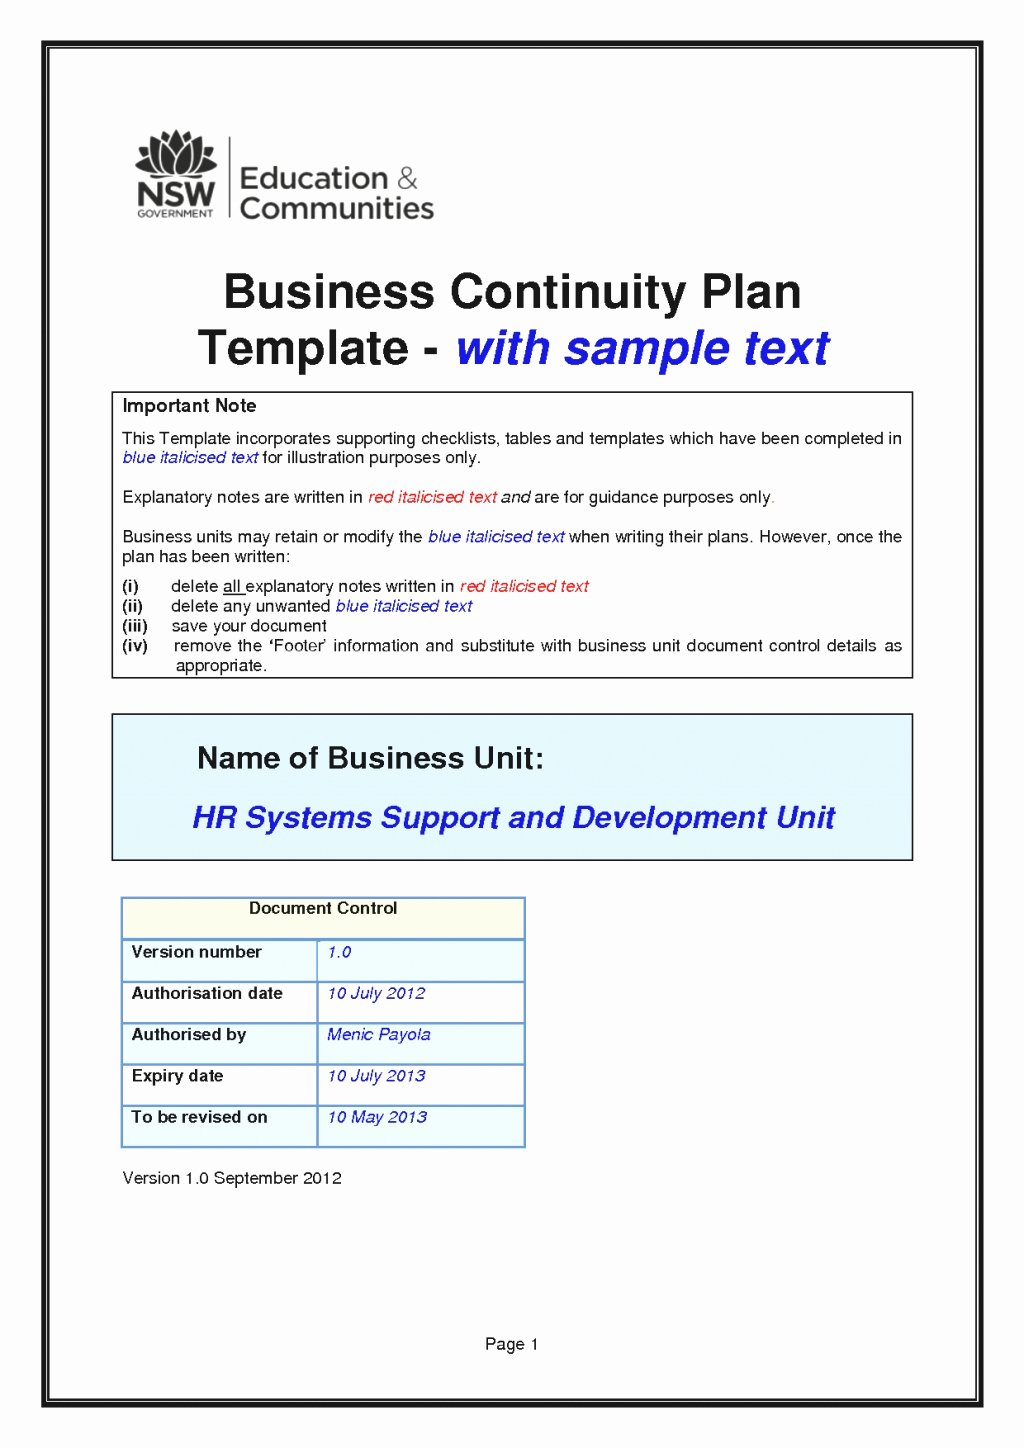 Small Business Continuity Plan Template Beautiful Business Continuity Plan Template